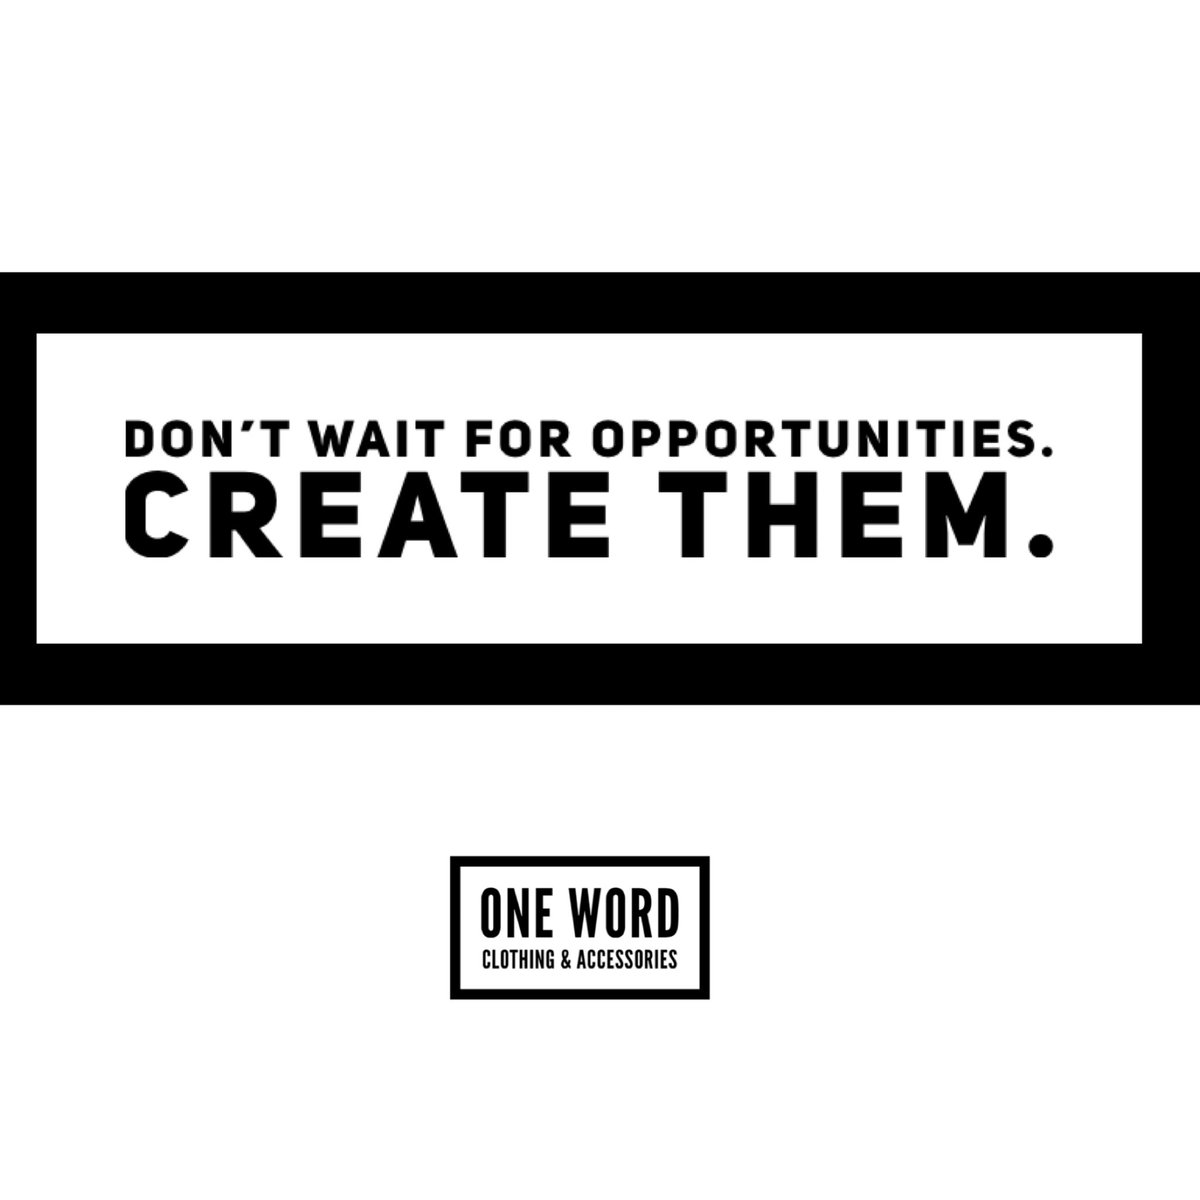 Creating opportunities is a part of starting a business. It isn't just about money but to help others that need jobs. It's also about creating something to pass down generations.    #entrepreneurlife #bossbabe #bossmom #blackownedbusiness #motivation